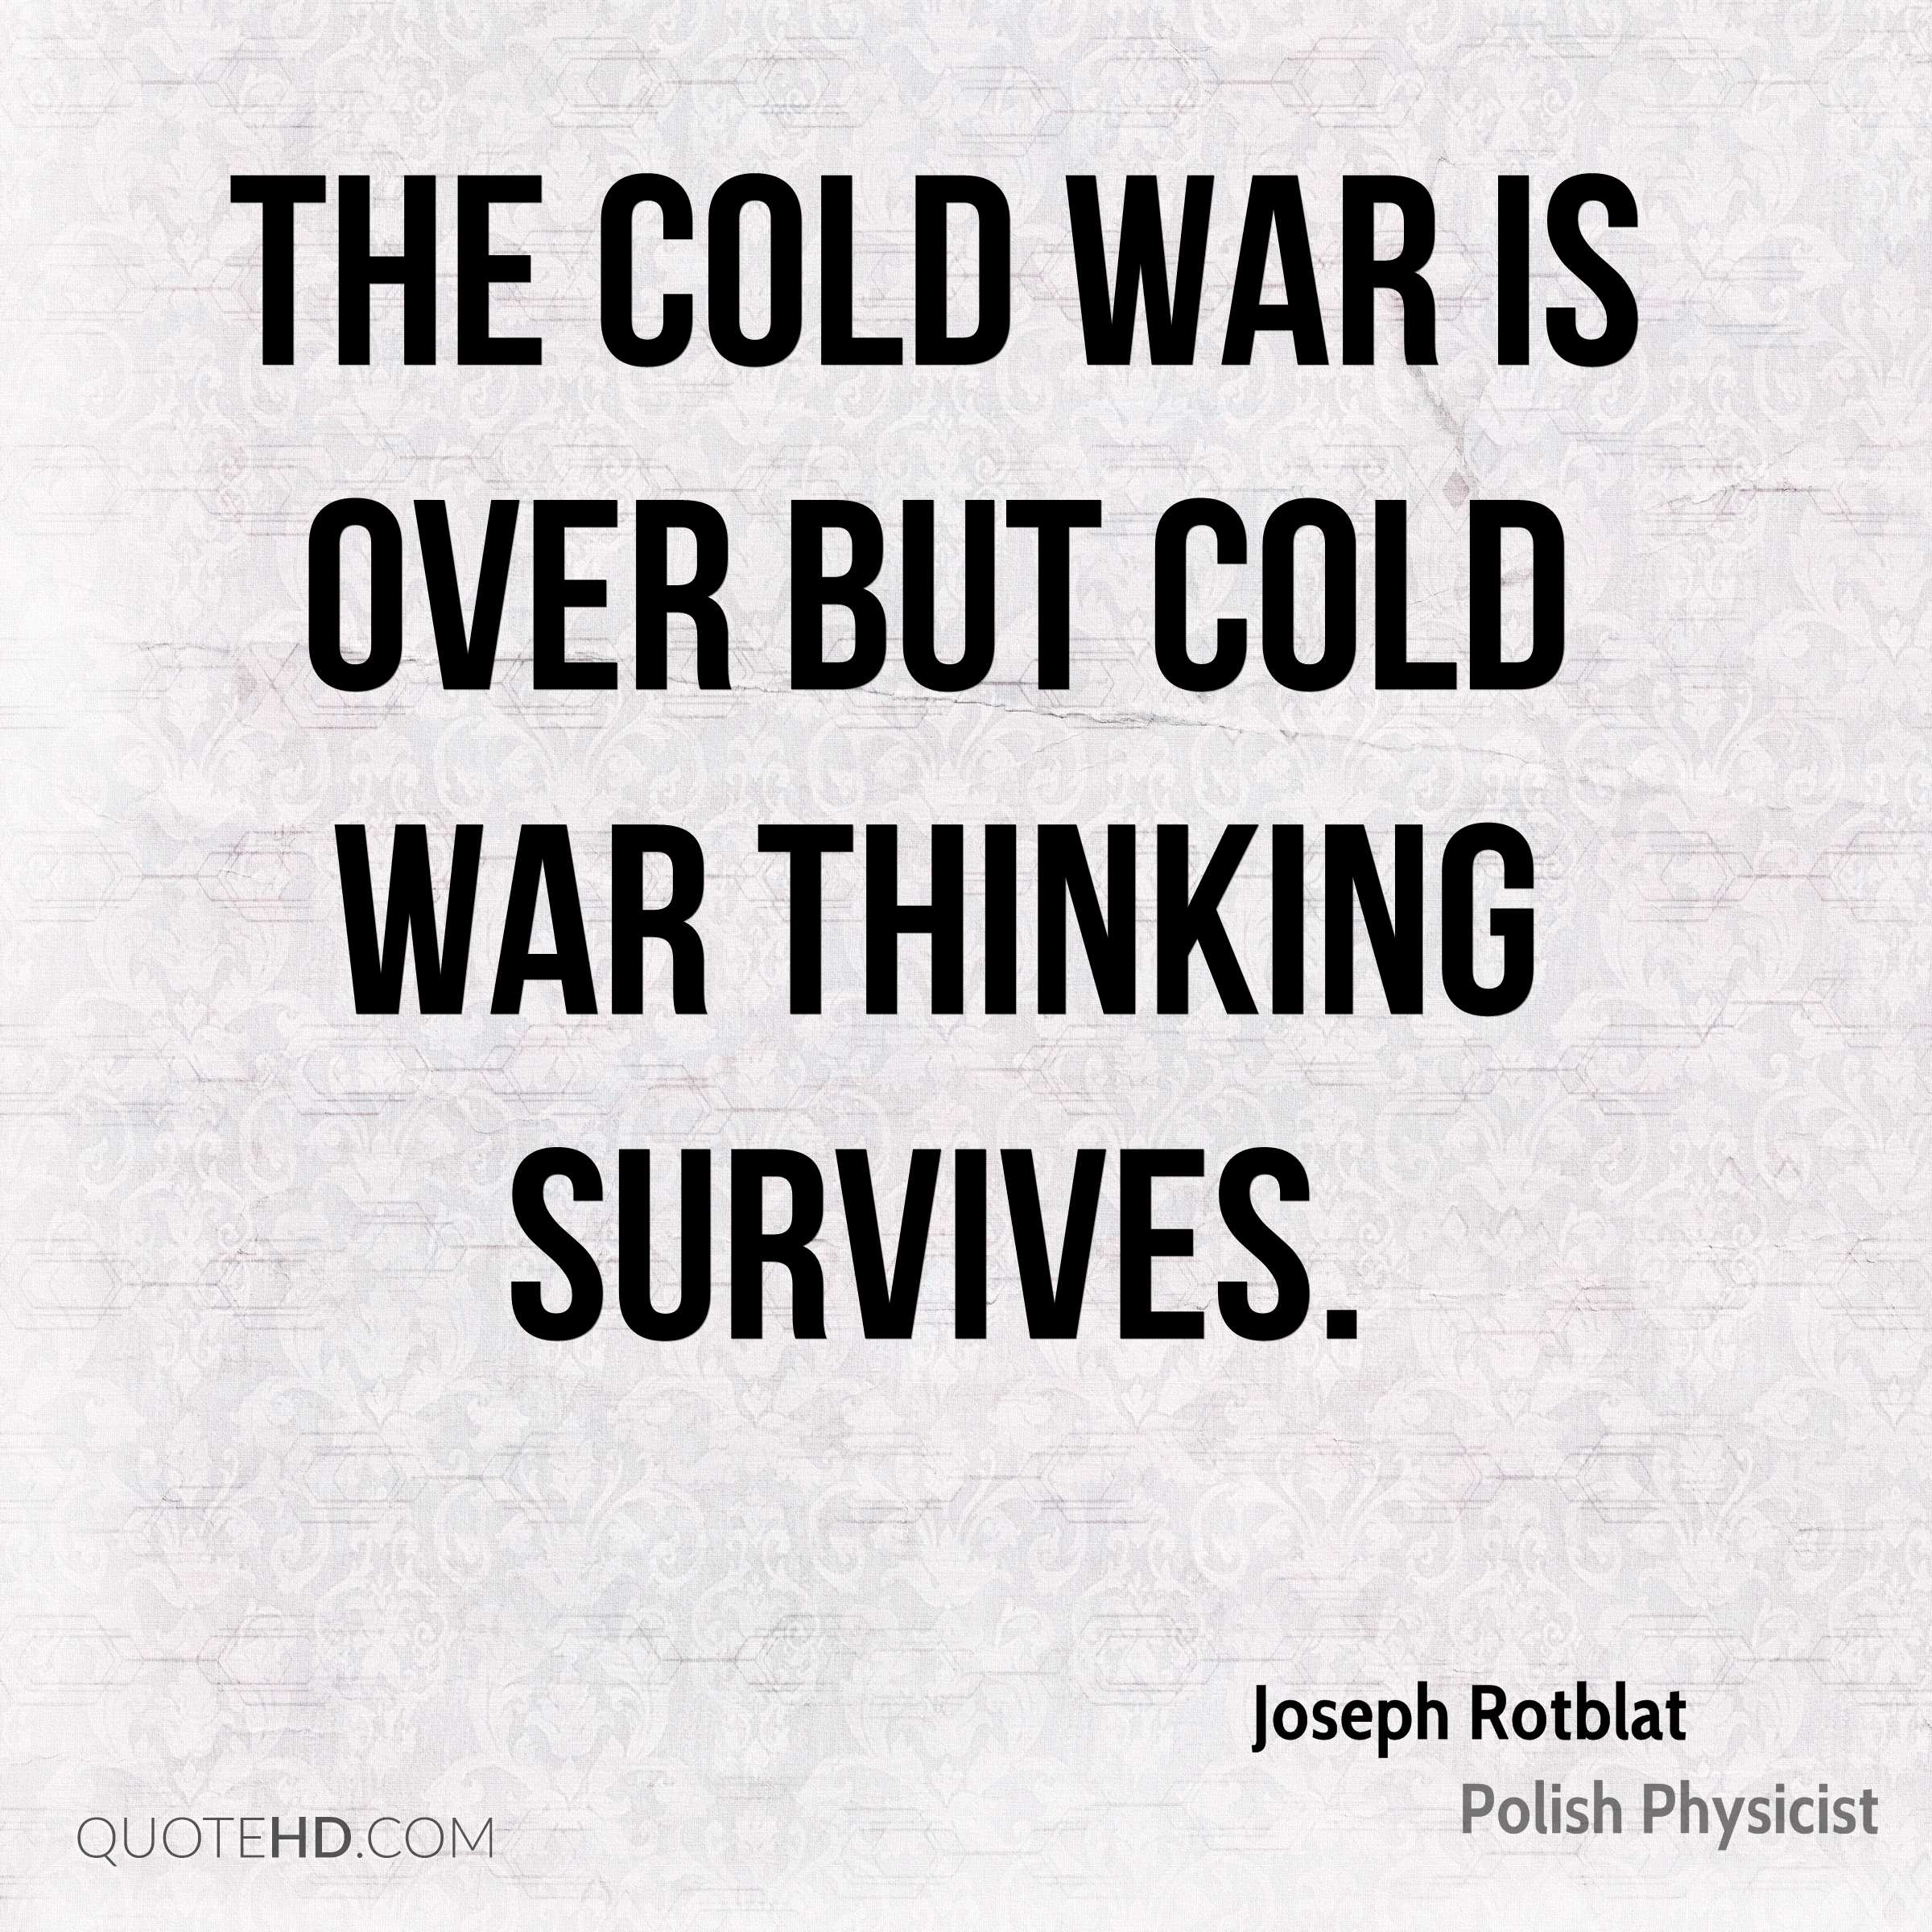 The Cold War is over but Cold War thinking survives.